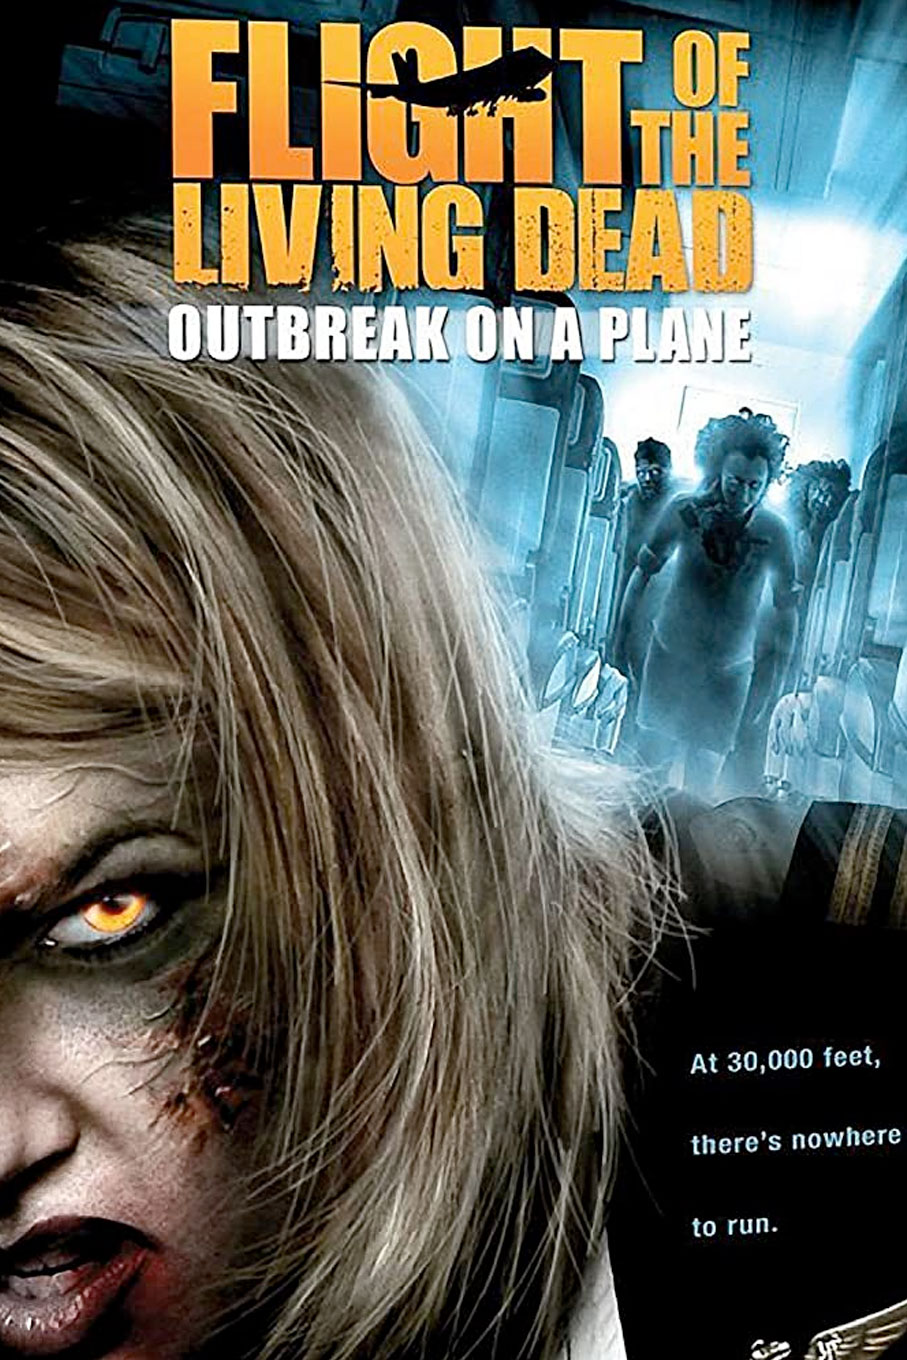 Flight of the living dead : Outbreak on a plane (2007)